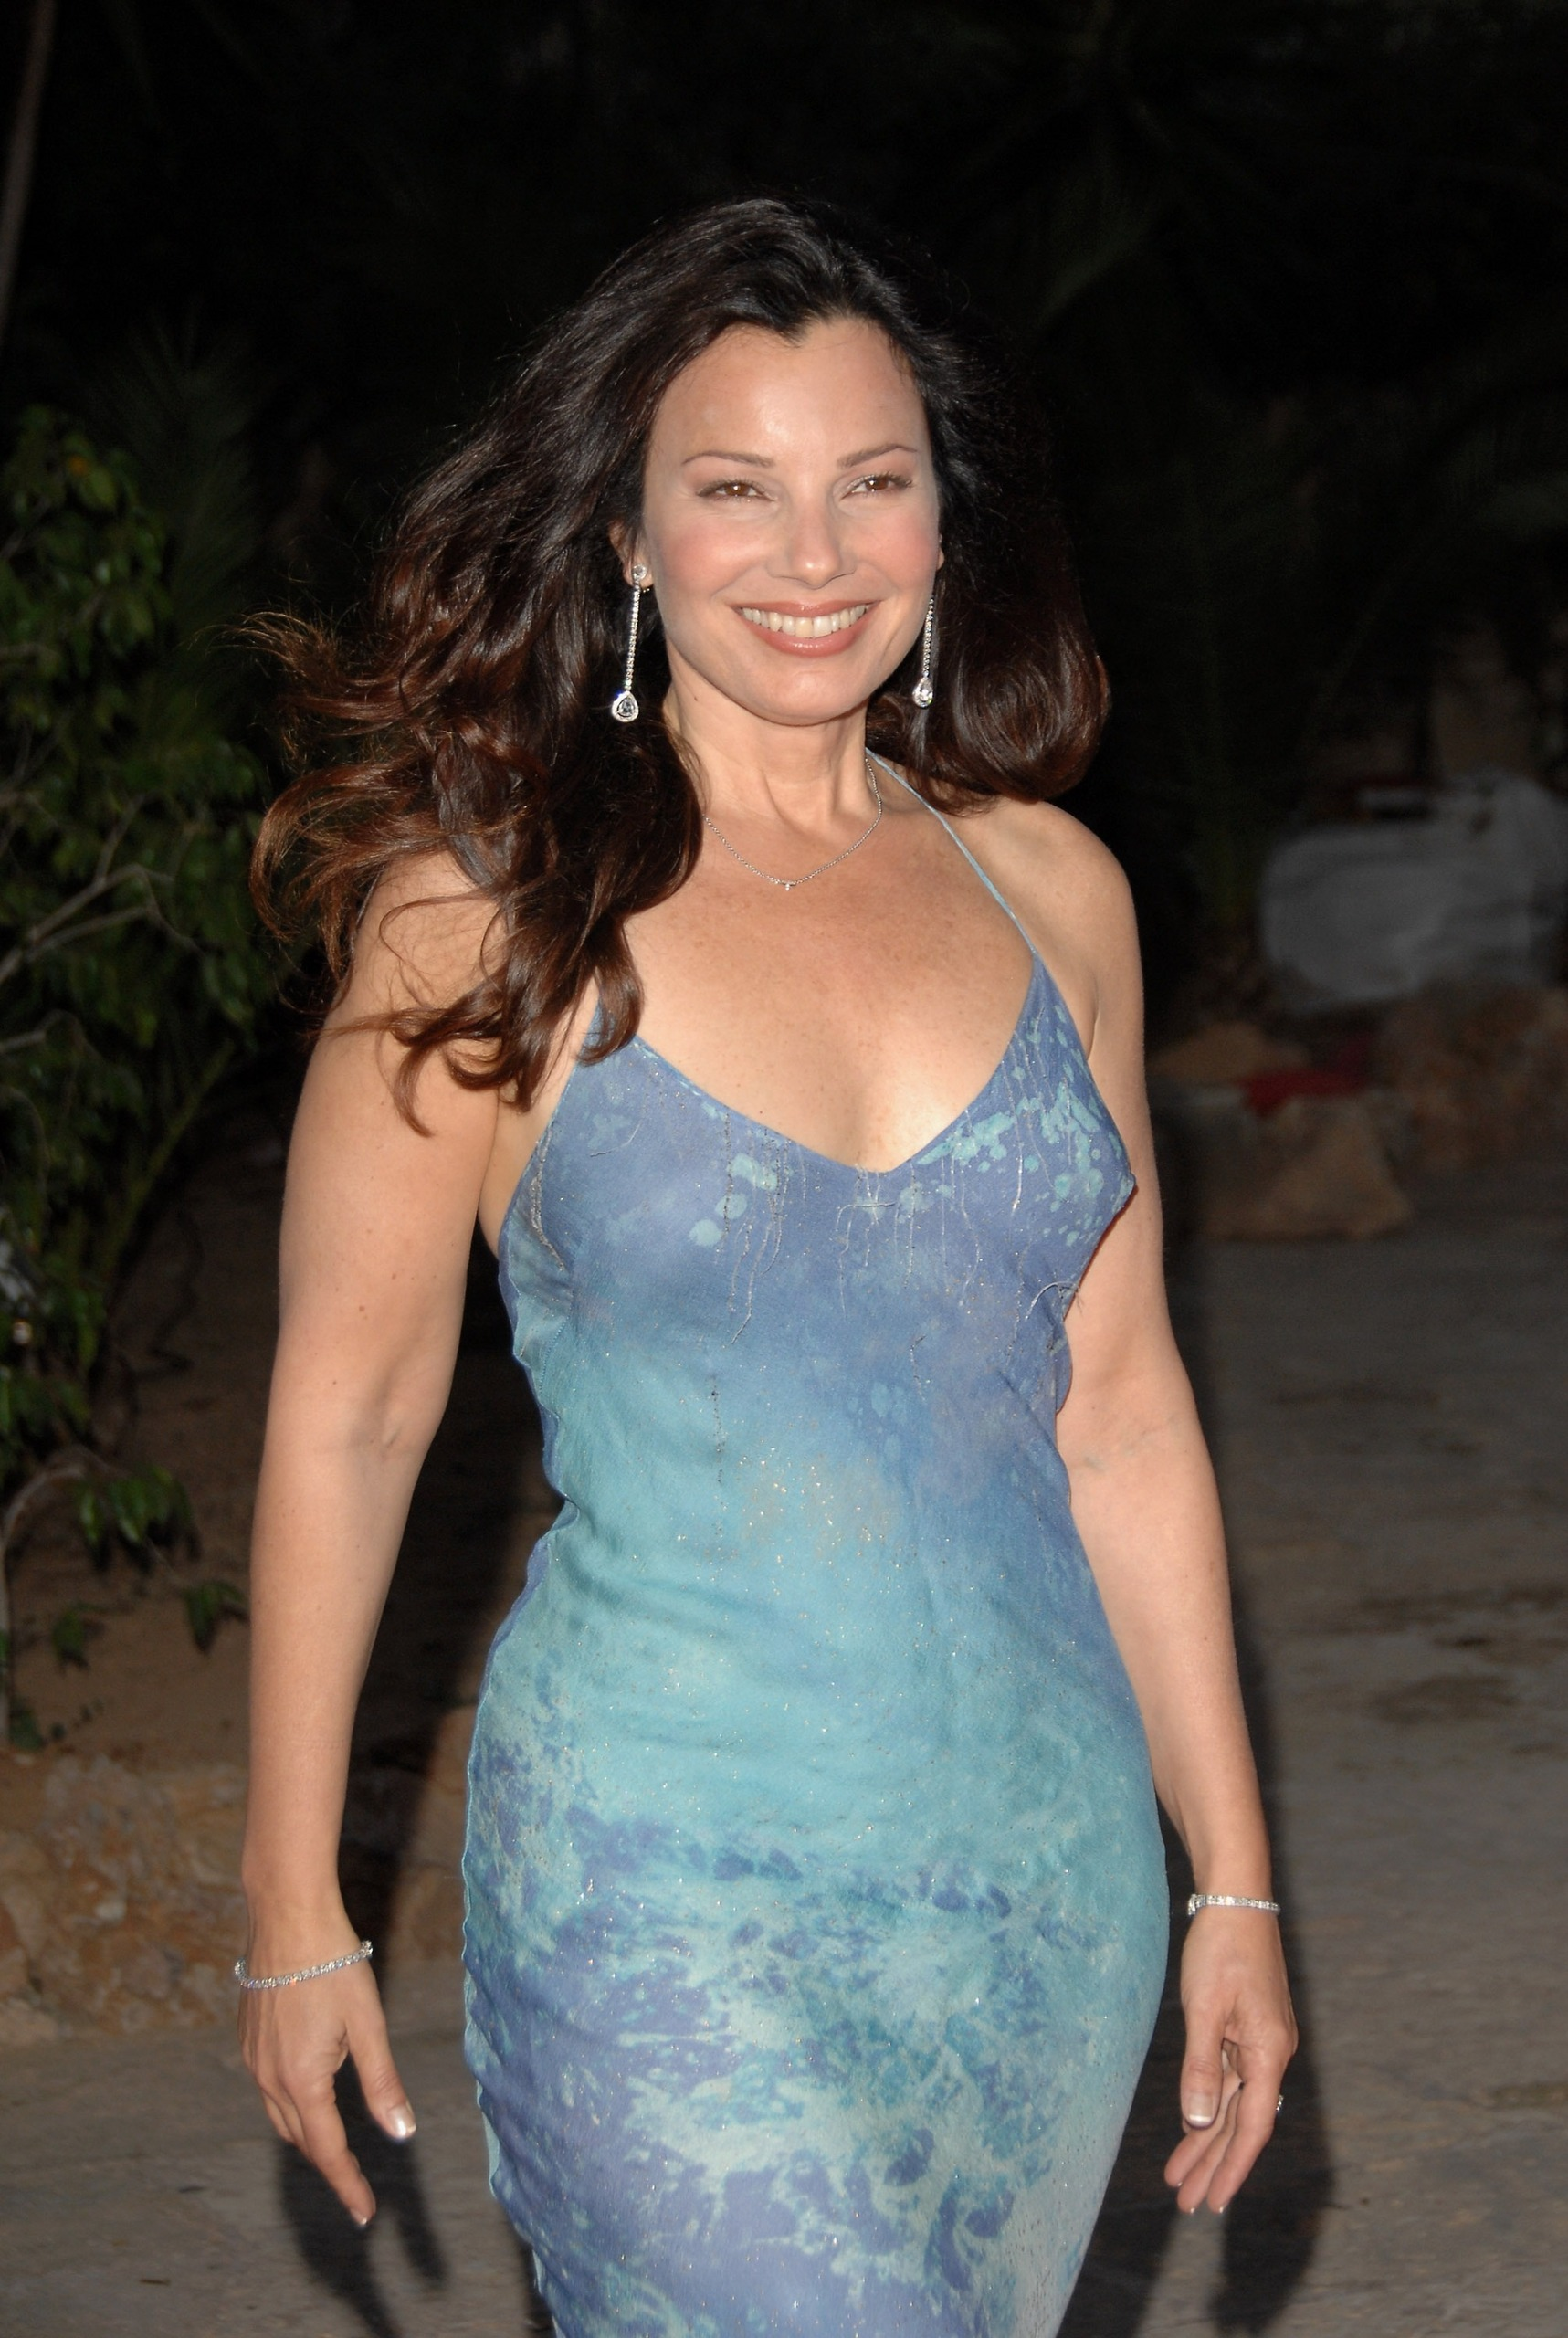 Fran-Drescher-fran-drescher-31258264-1717-2560.jpg